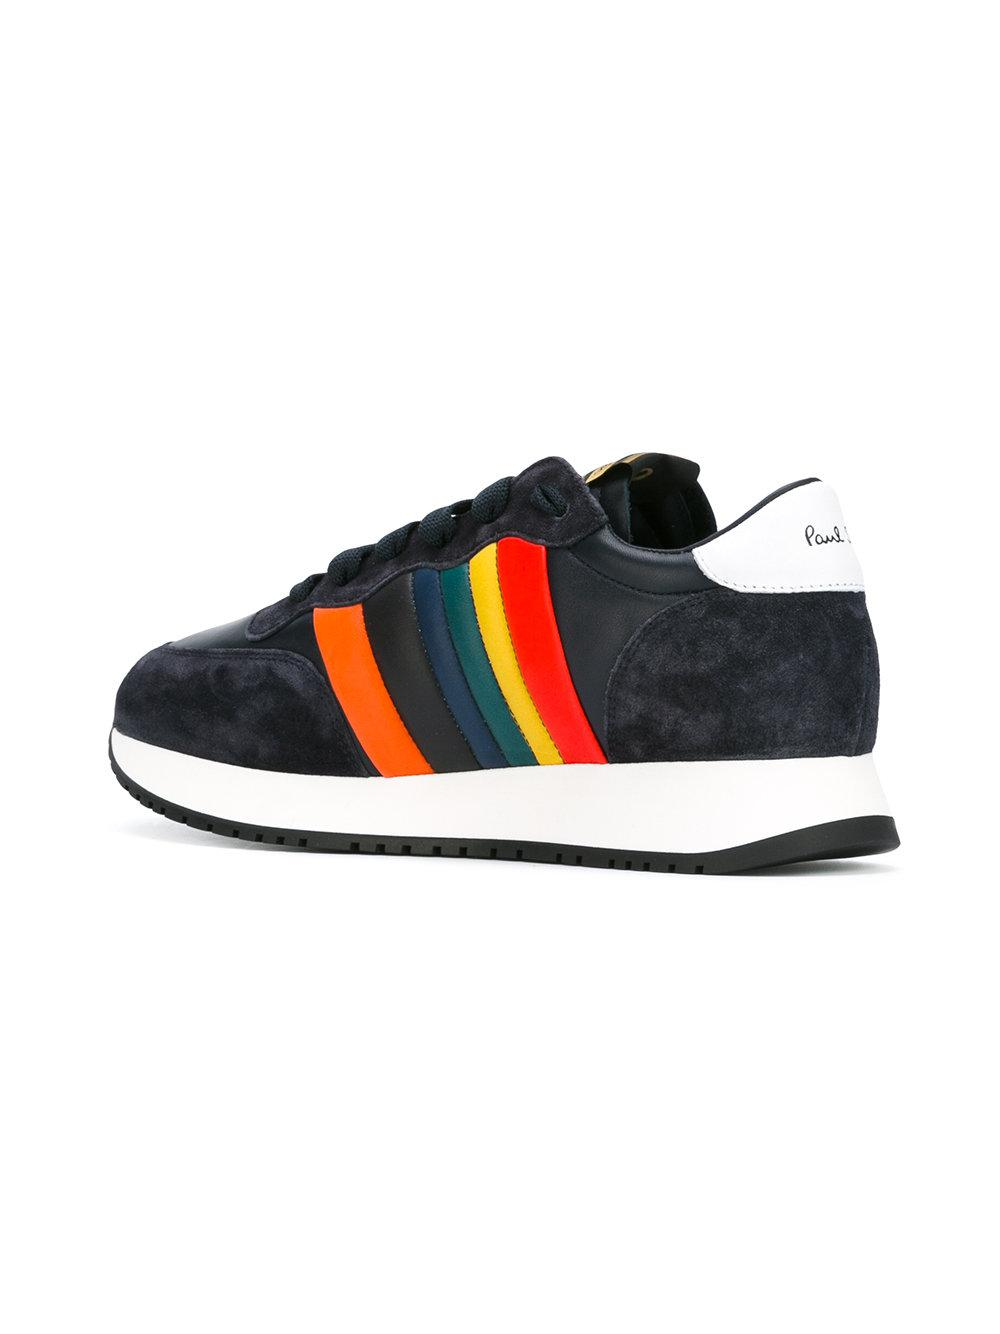 Paul Smith Leather Rainbow Trim Trainers in Blue for Men